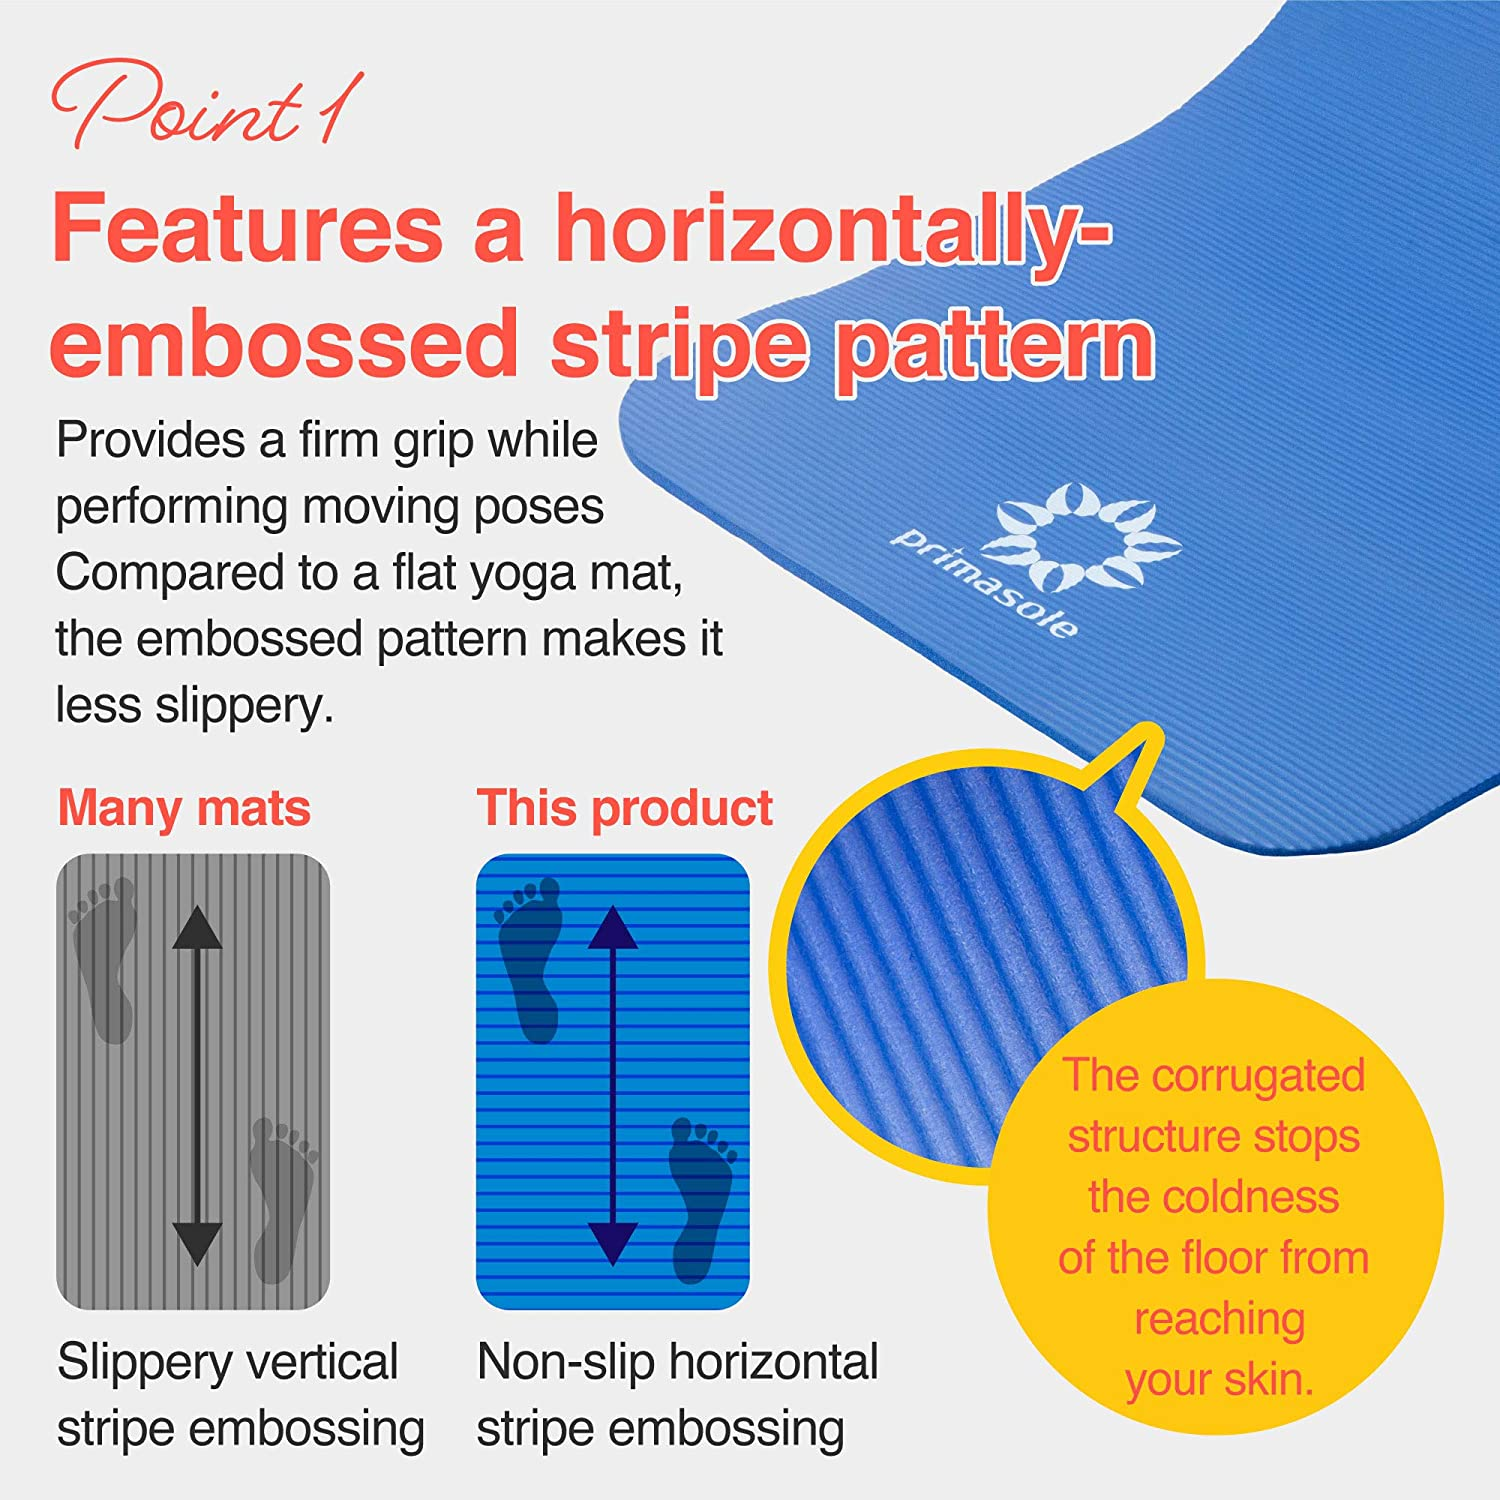 72 L/×24 W/×1//2 Inch Thick PSS91NH032A Primasole 【 Limited Brand】 Yoga Mat Training Mat Non-Slip Horizontal Stripe Embossed with Carrying Strap Storage Case Royal Blue Color